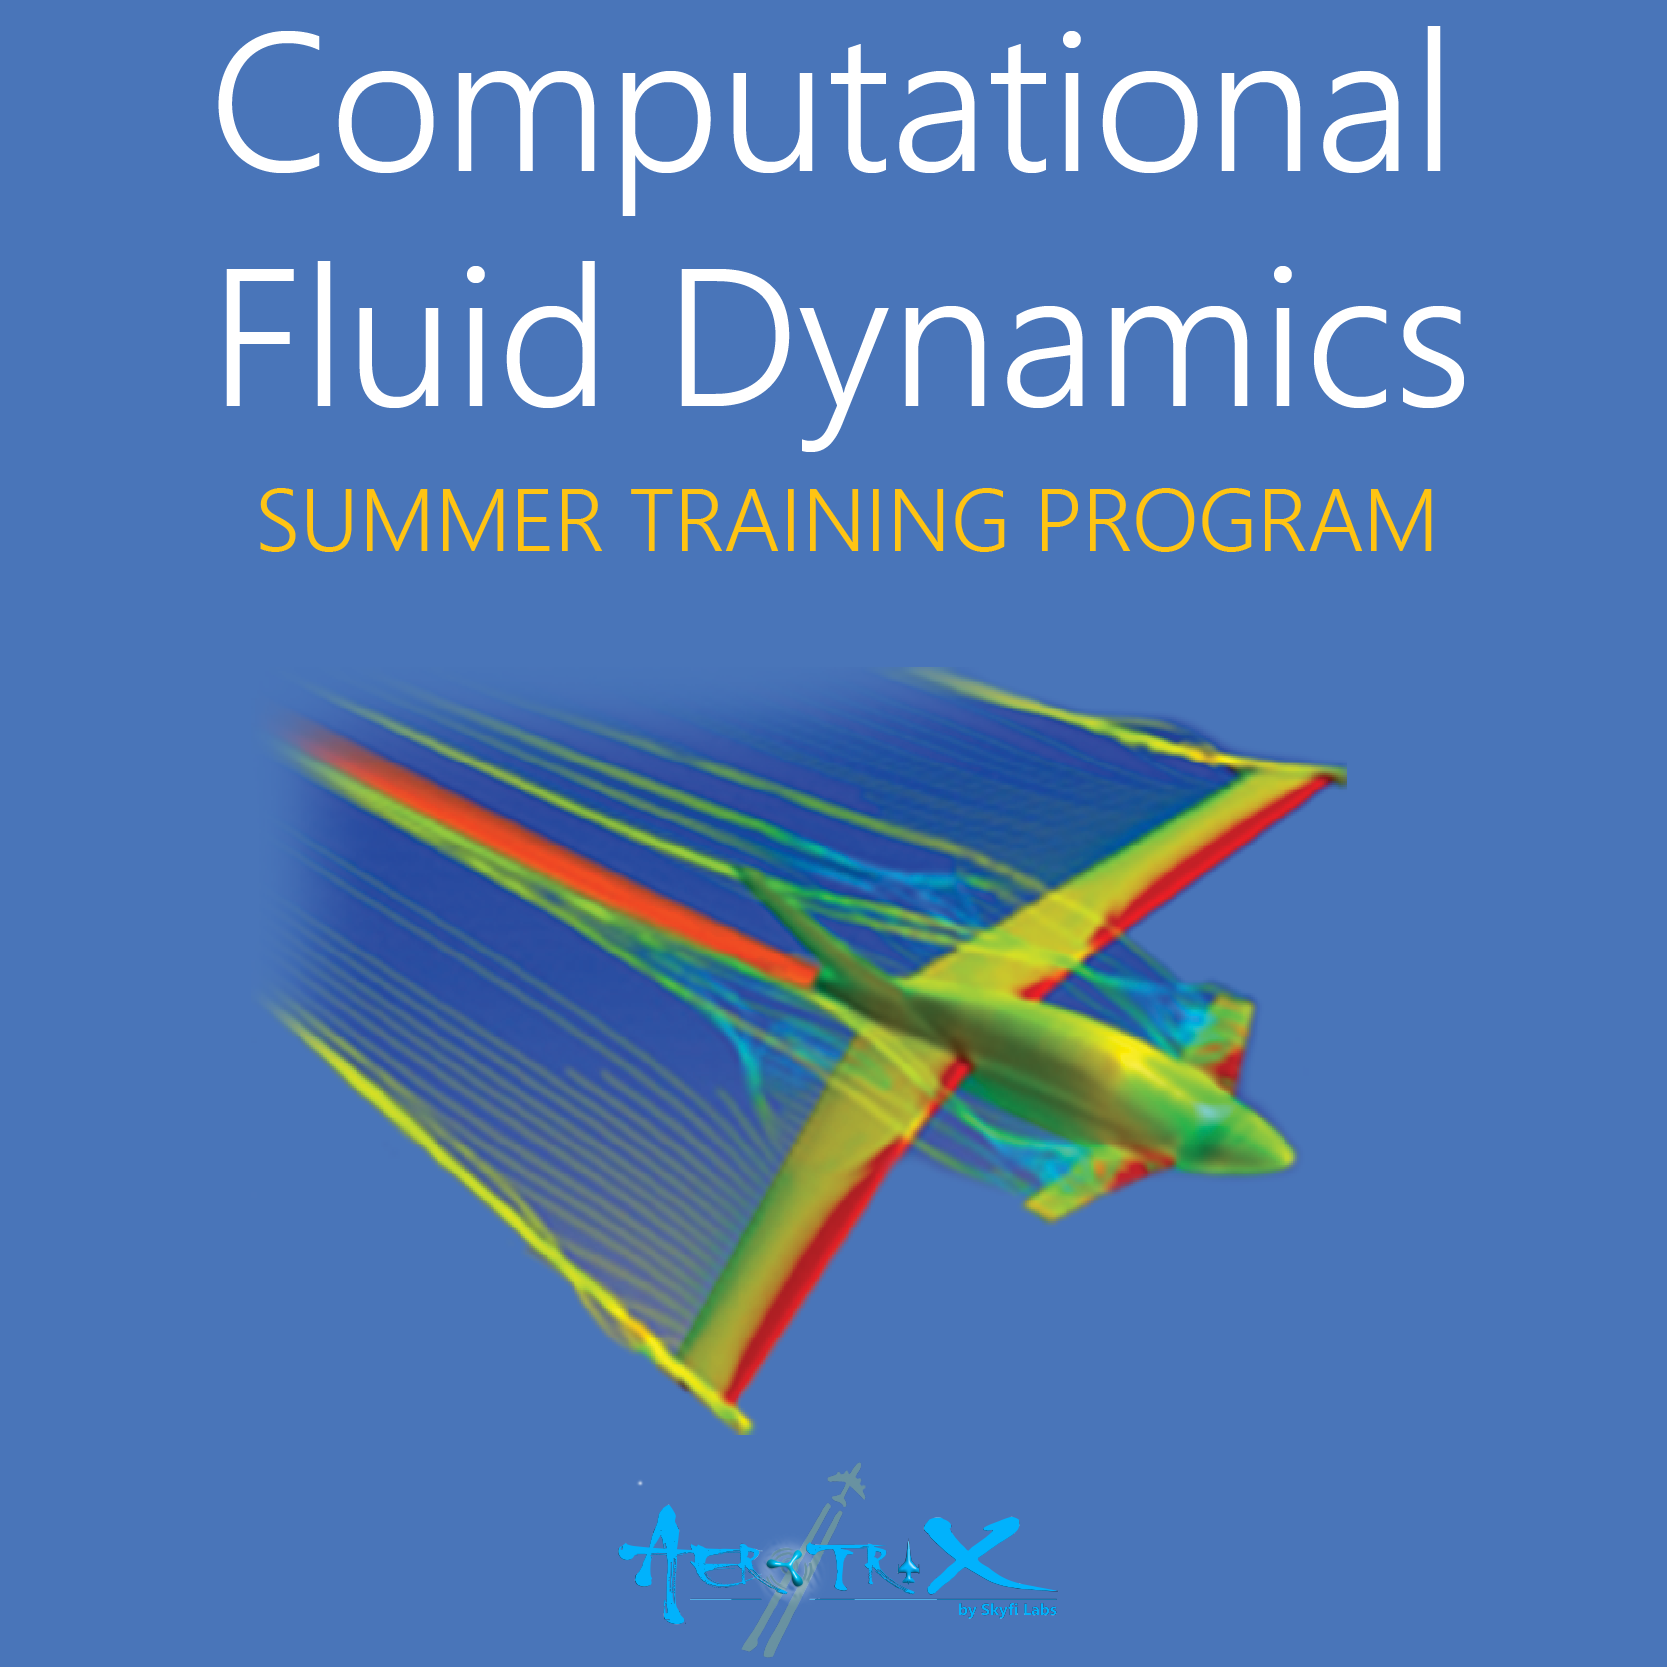 Summer Training Program on CFD in association with Altair Engineering  at Skyfi Labs Center Workshop